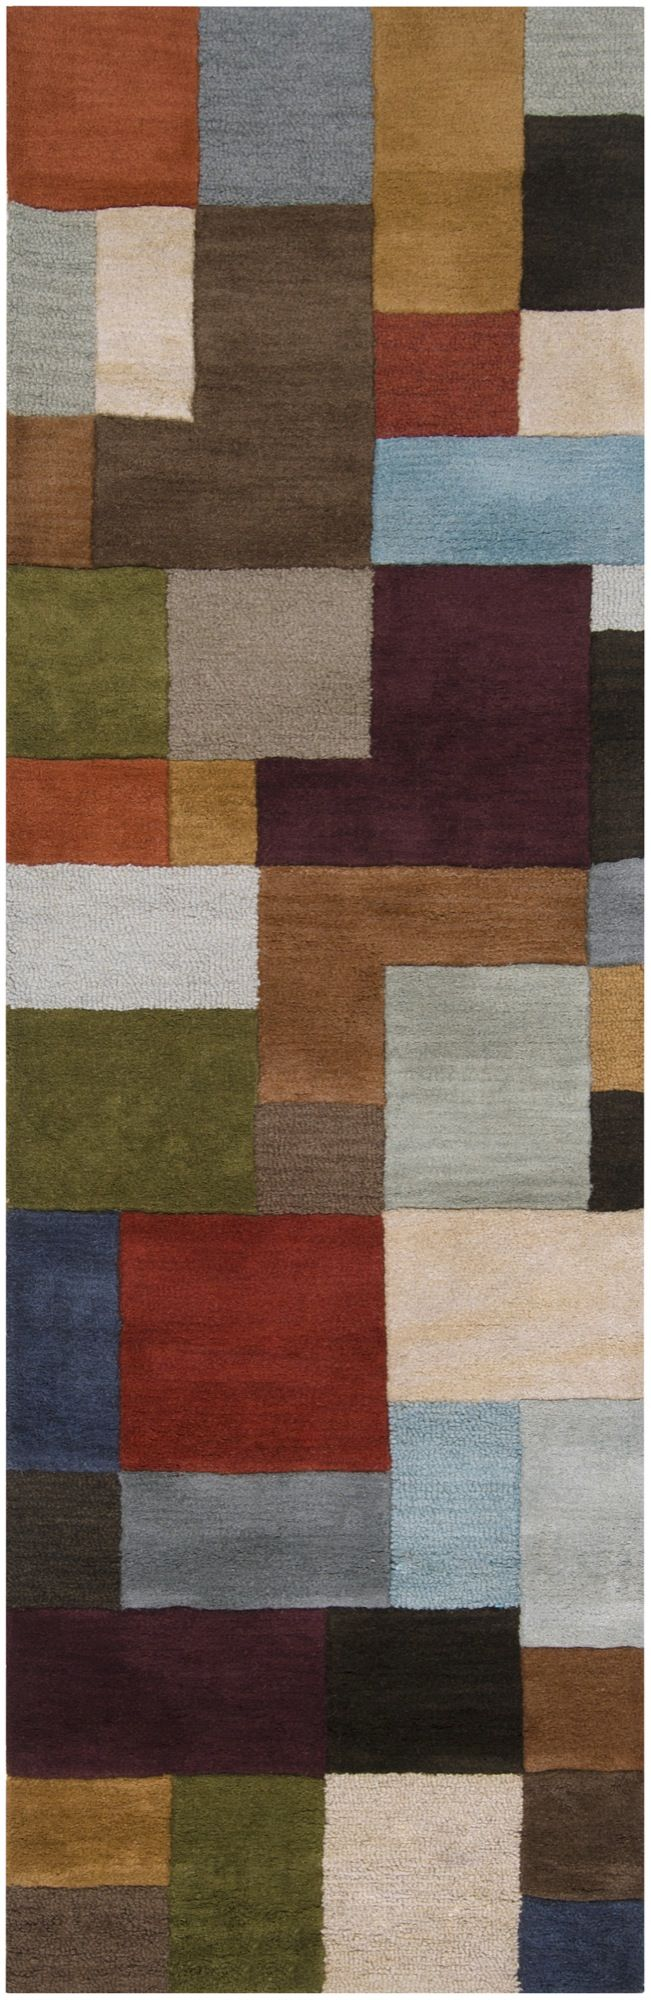 surya oasis contemporary area rug collection